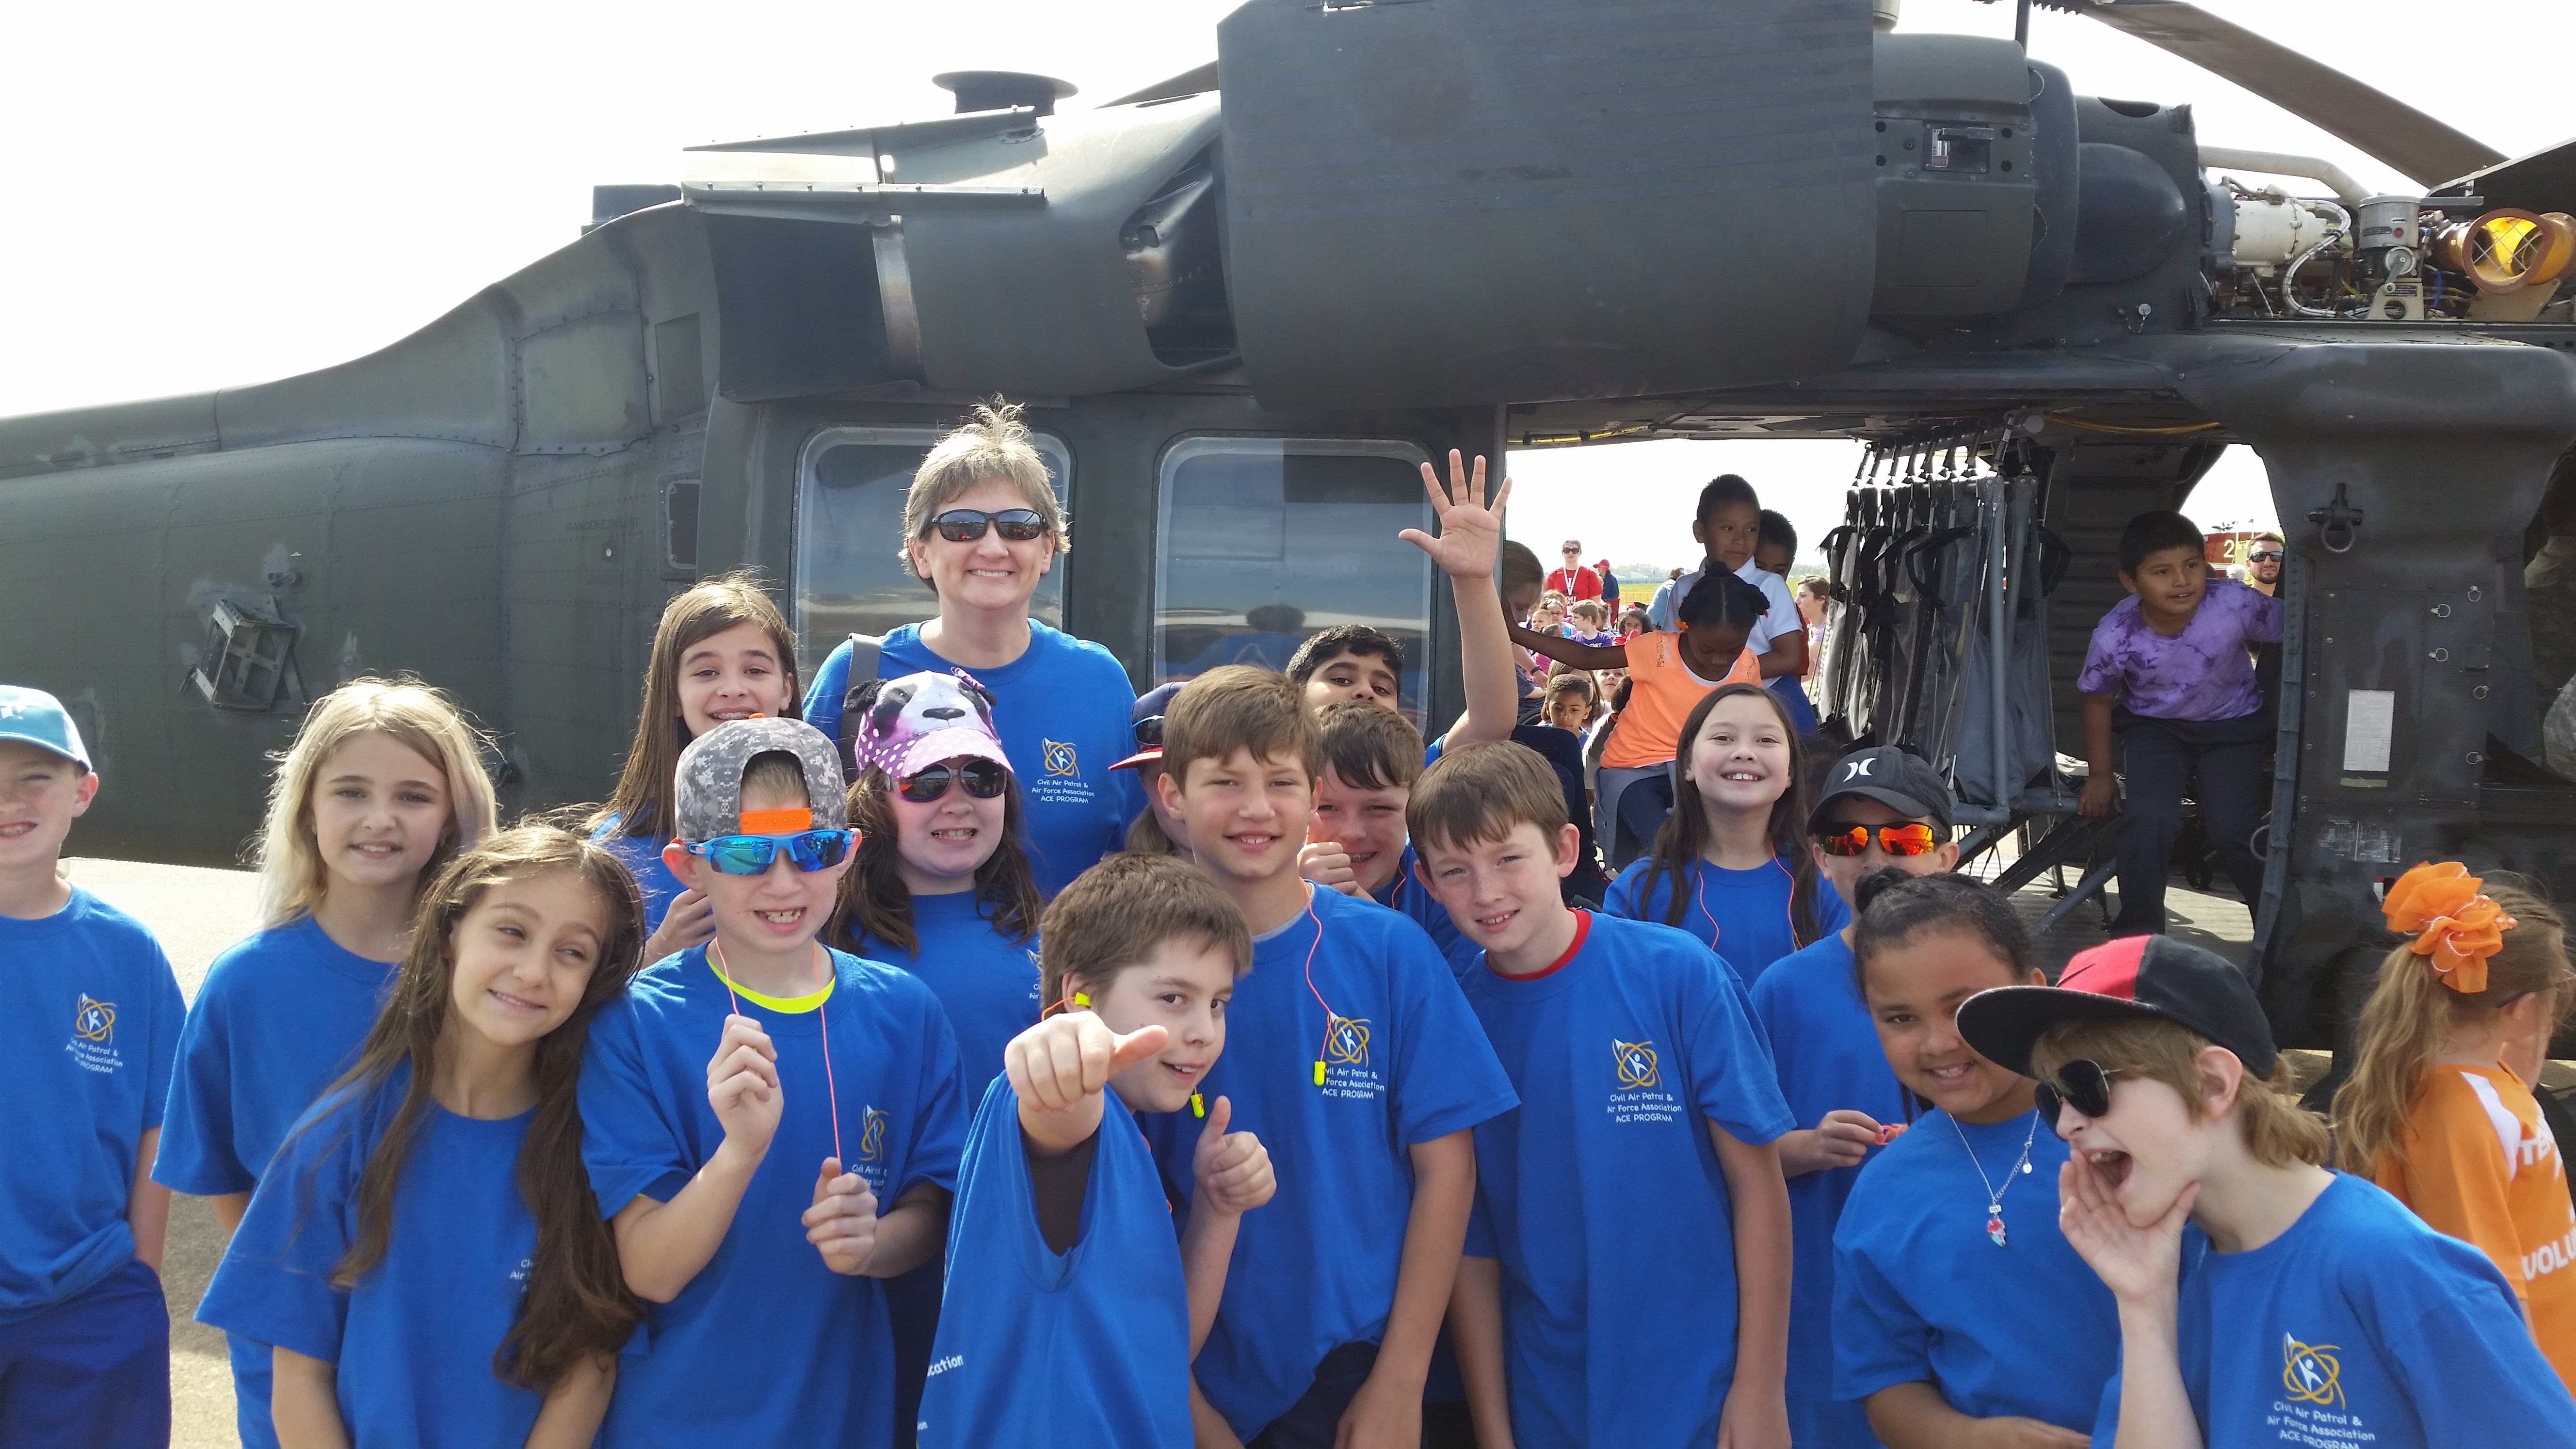 Suzanne Costner and her students tour static displays at an air show